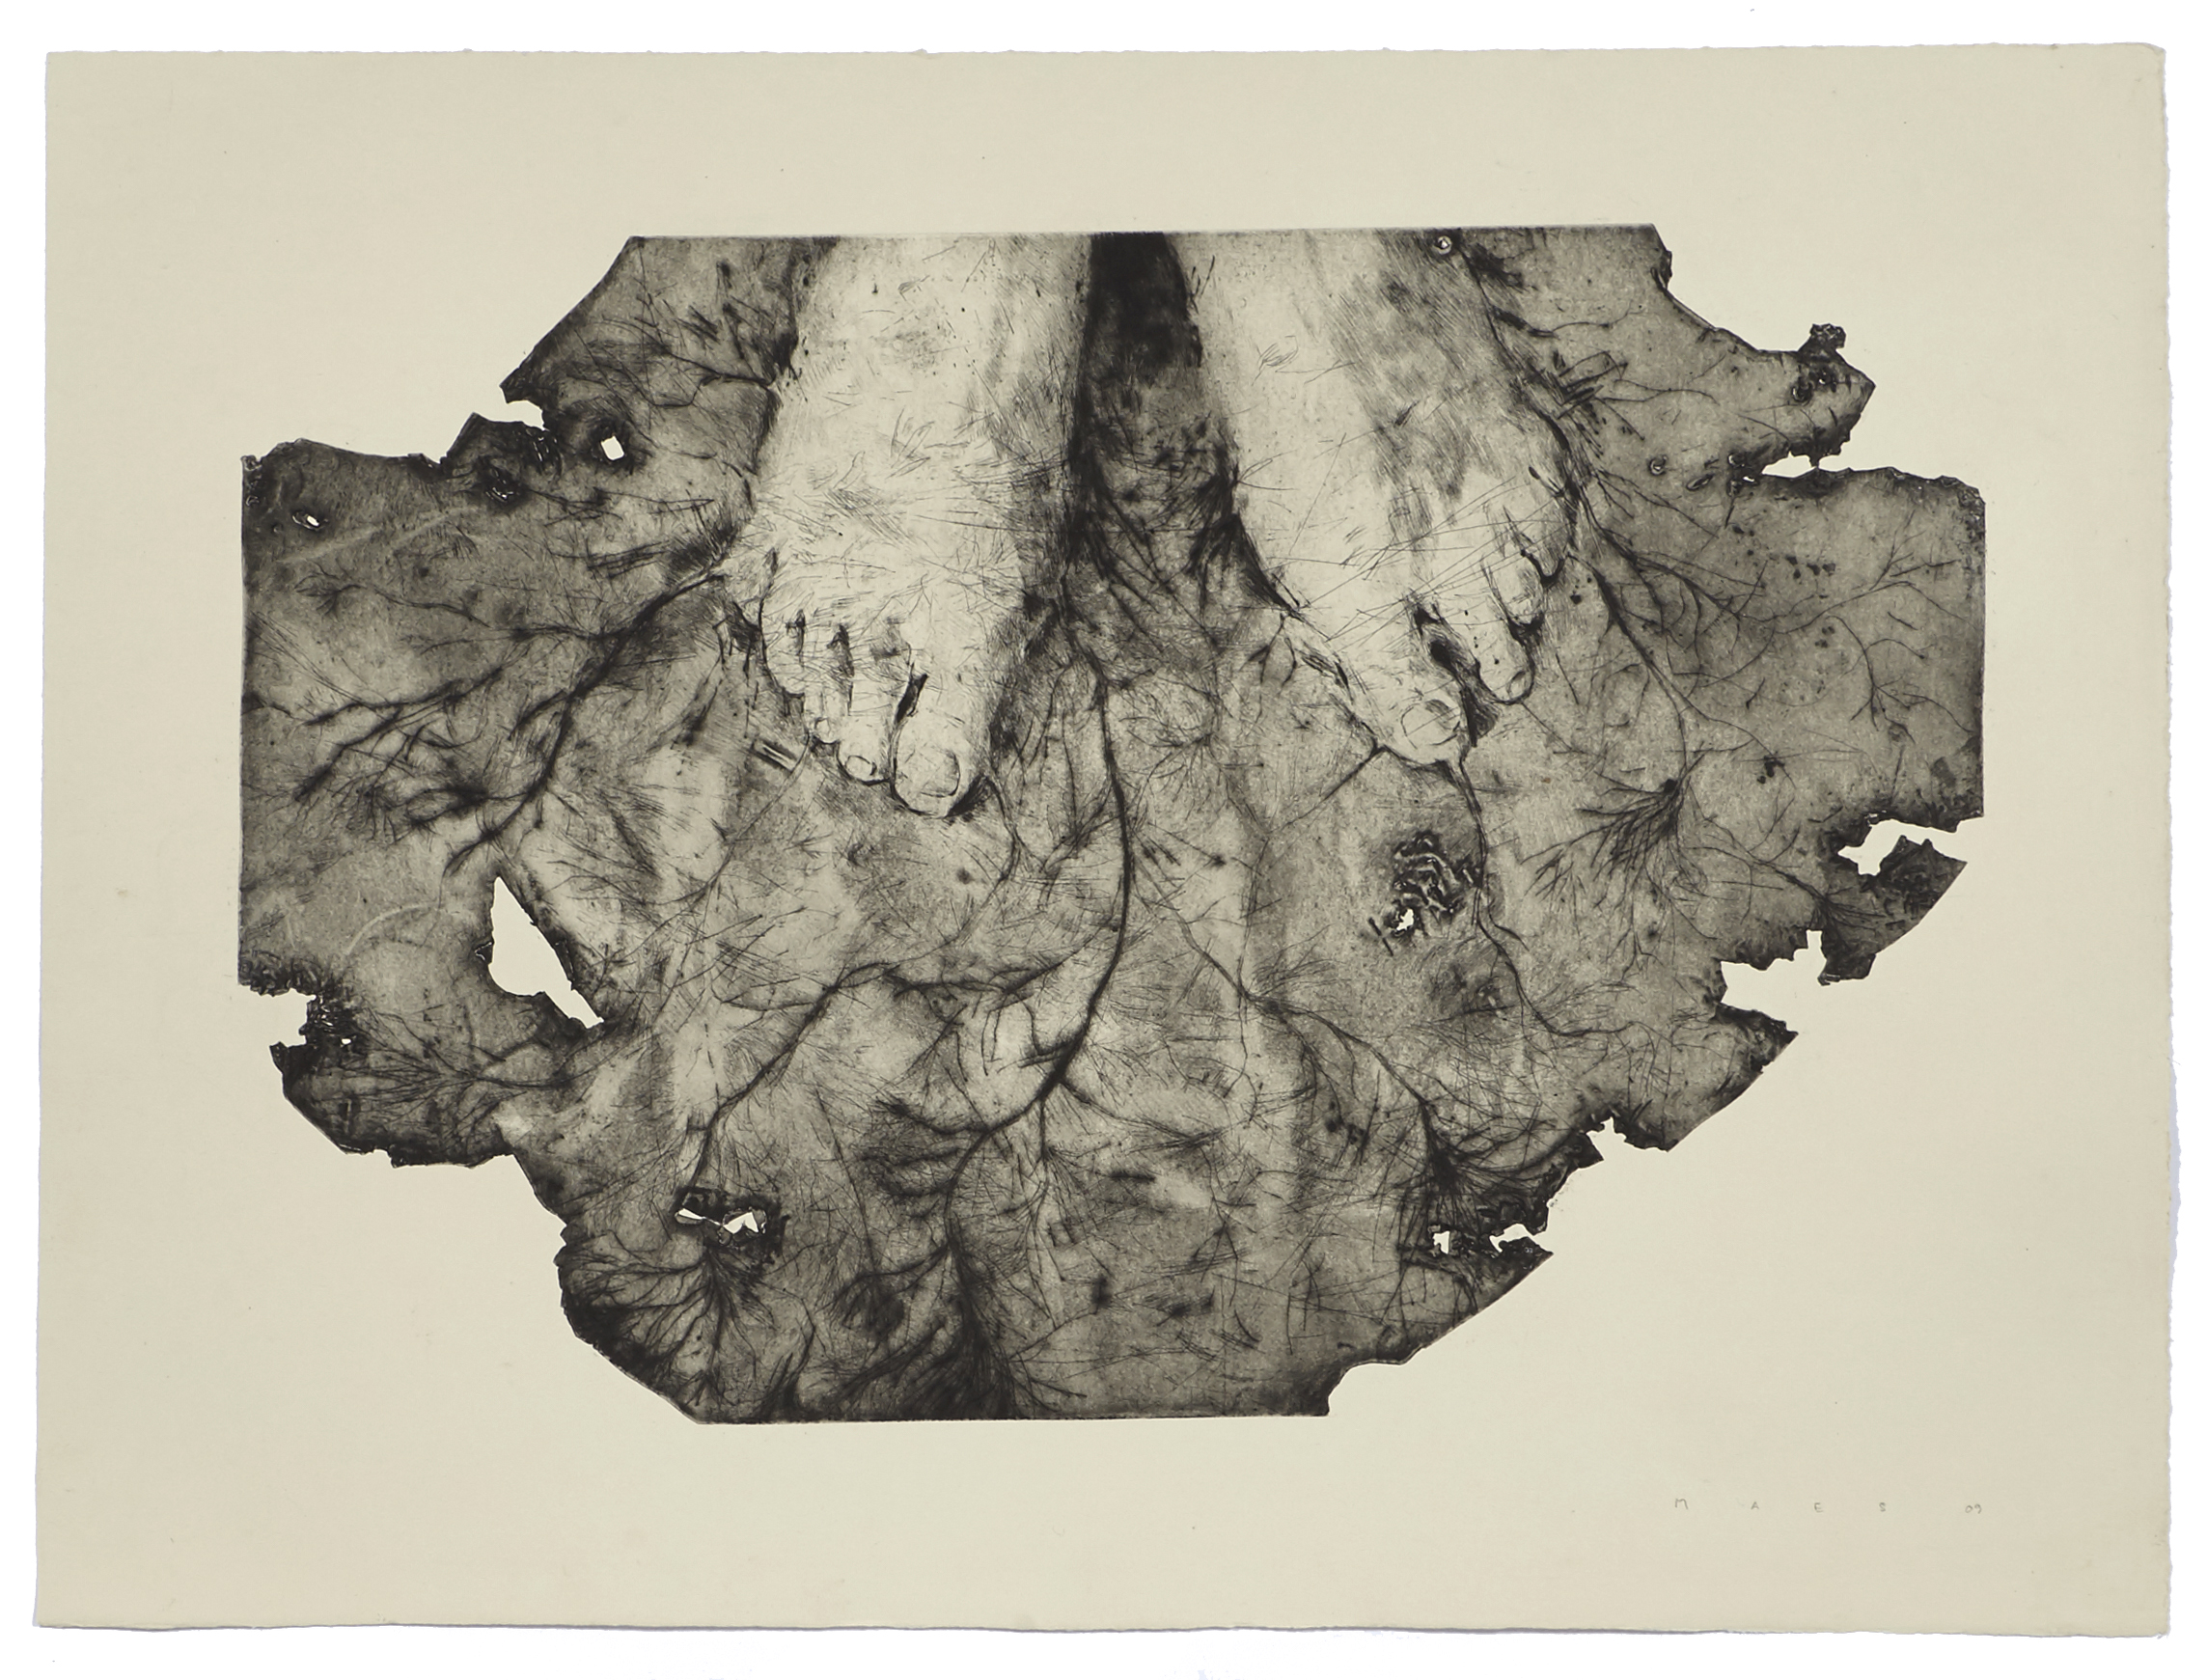 Taking Root    2009 | 54 x 73 cm | Dry point